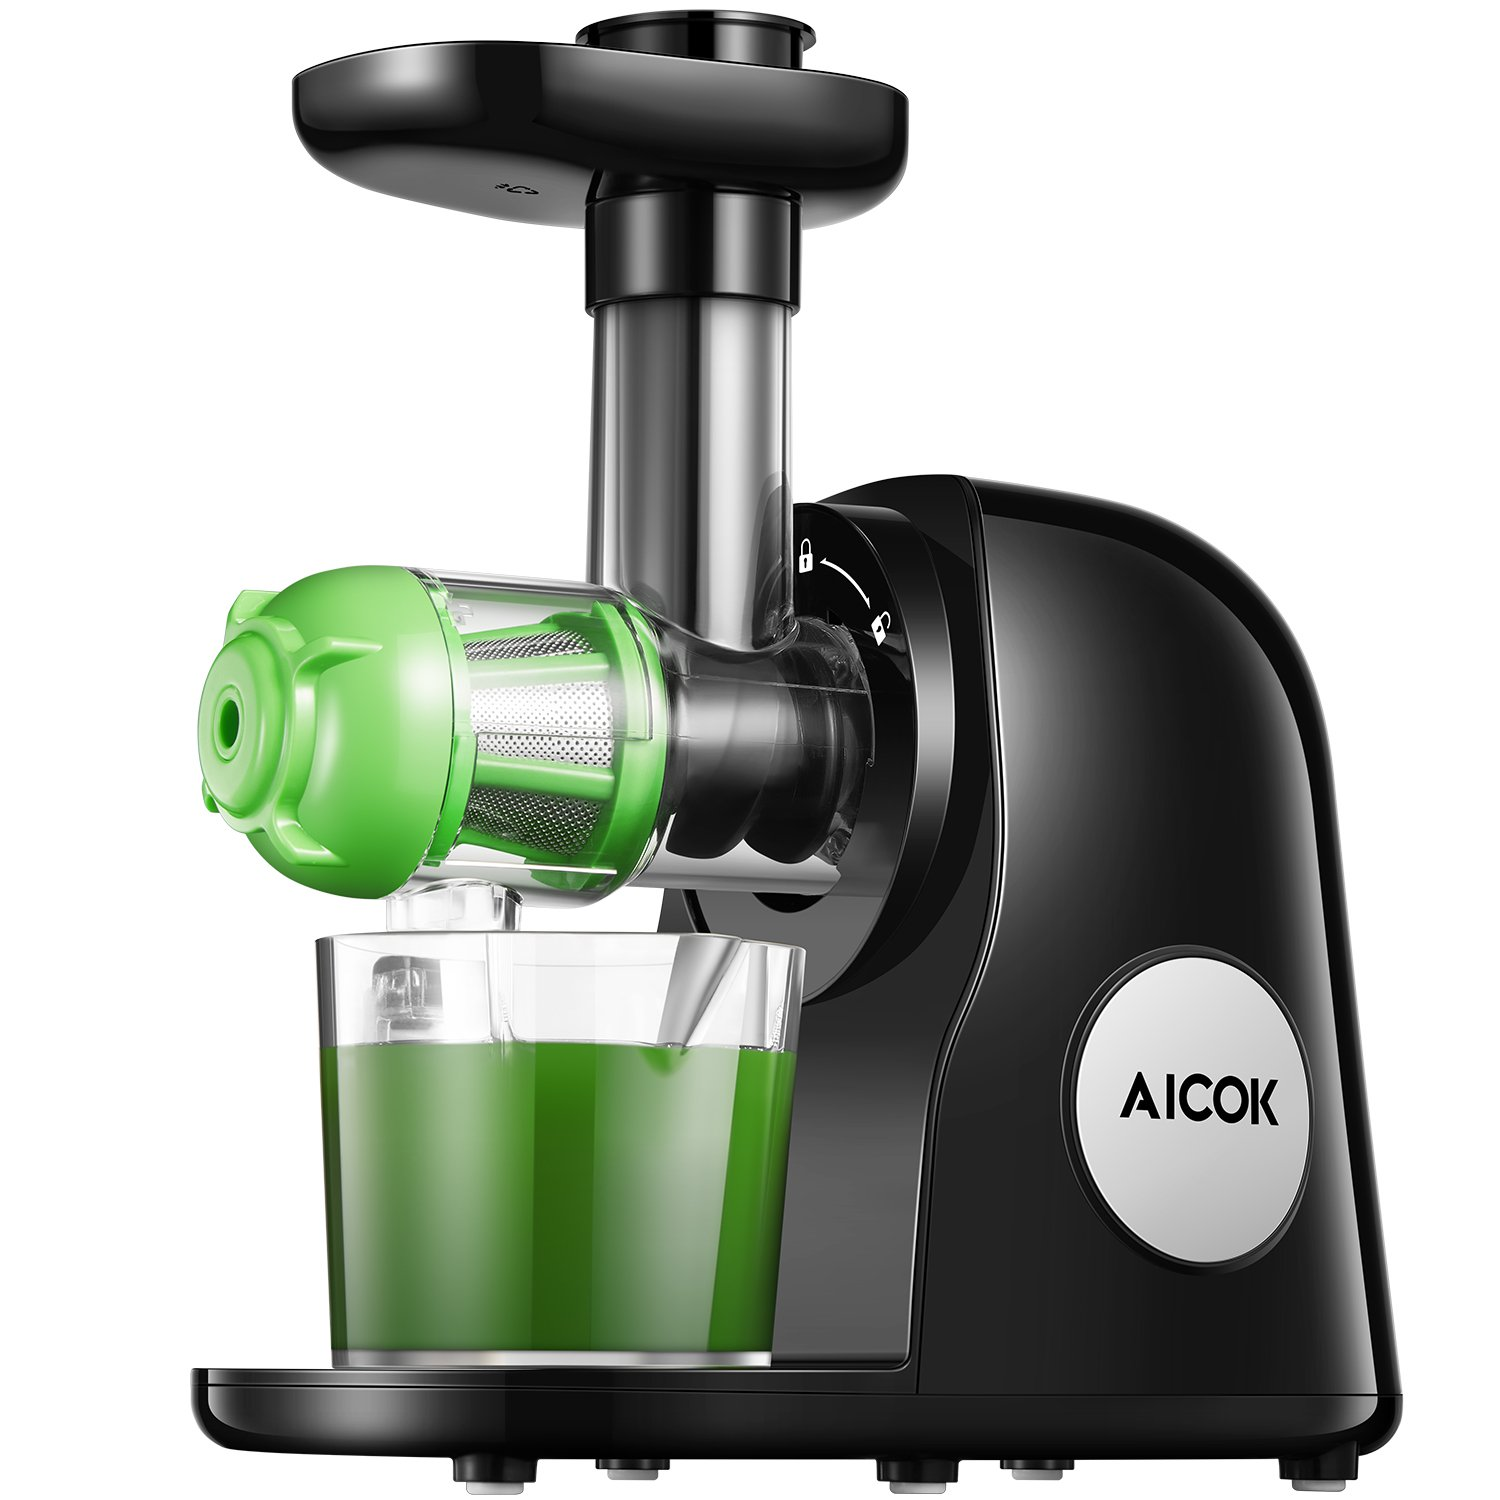 Juicer Masticating Slow Juicer Extractor, Aicok Juice Quiet Motor & Reverse Function, BPA Free, Cold Press Juicer Easy to Clean with Brush, Juice Machine Recipes for Vegetables and Fruits